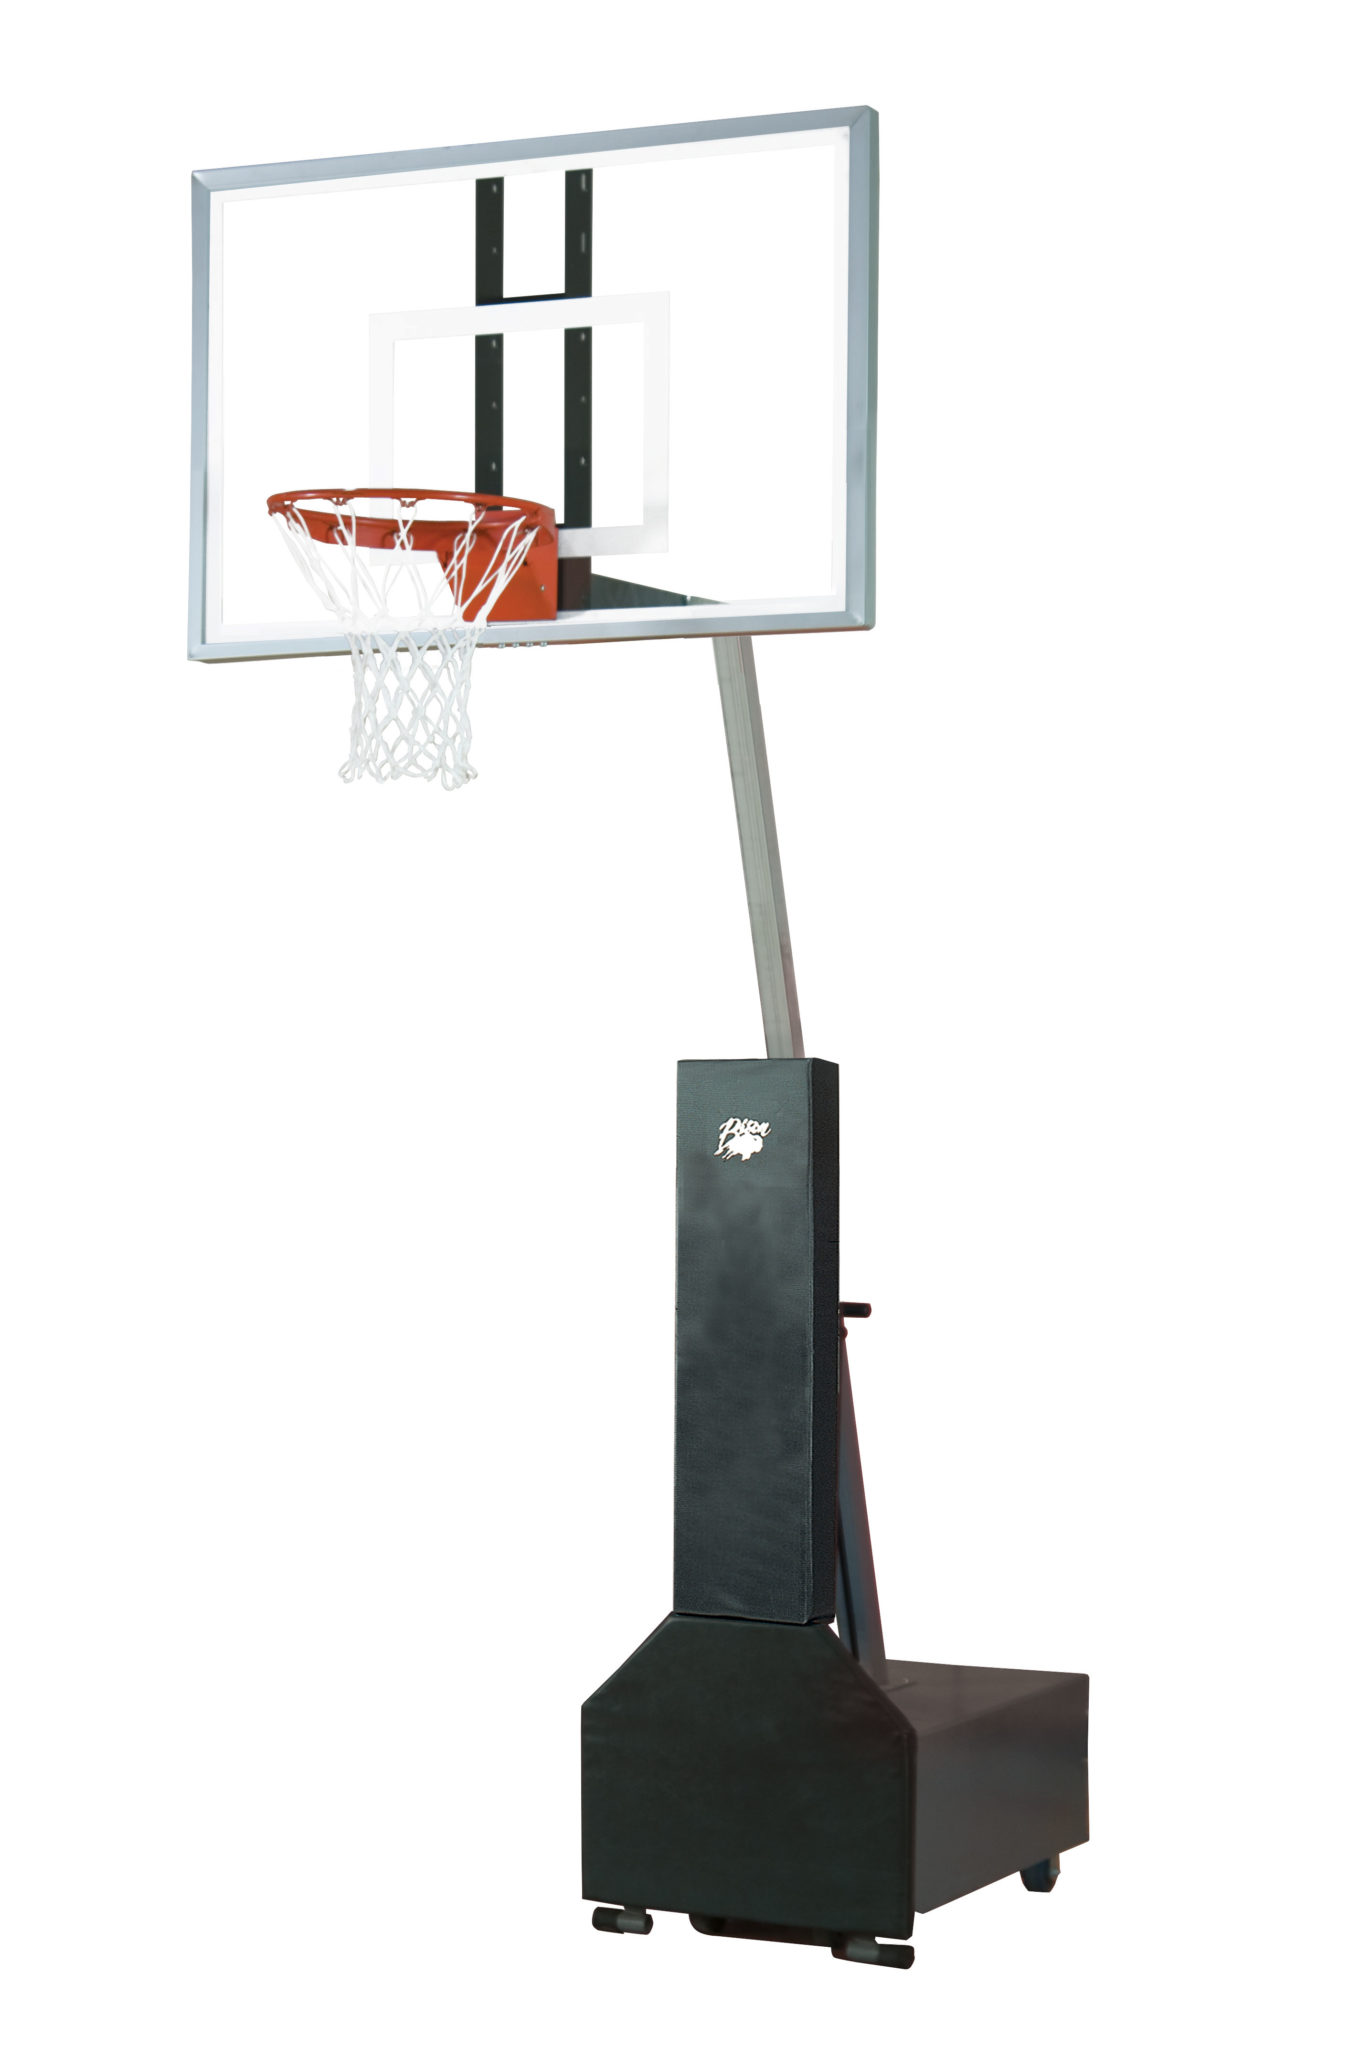 Club court glass portable adjustable basketball system for Indoor basketball court installation